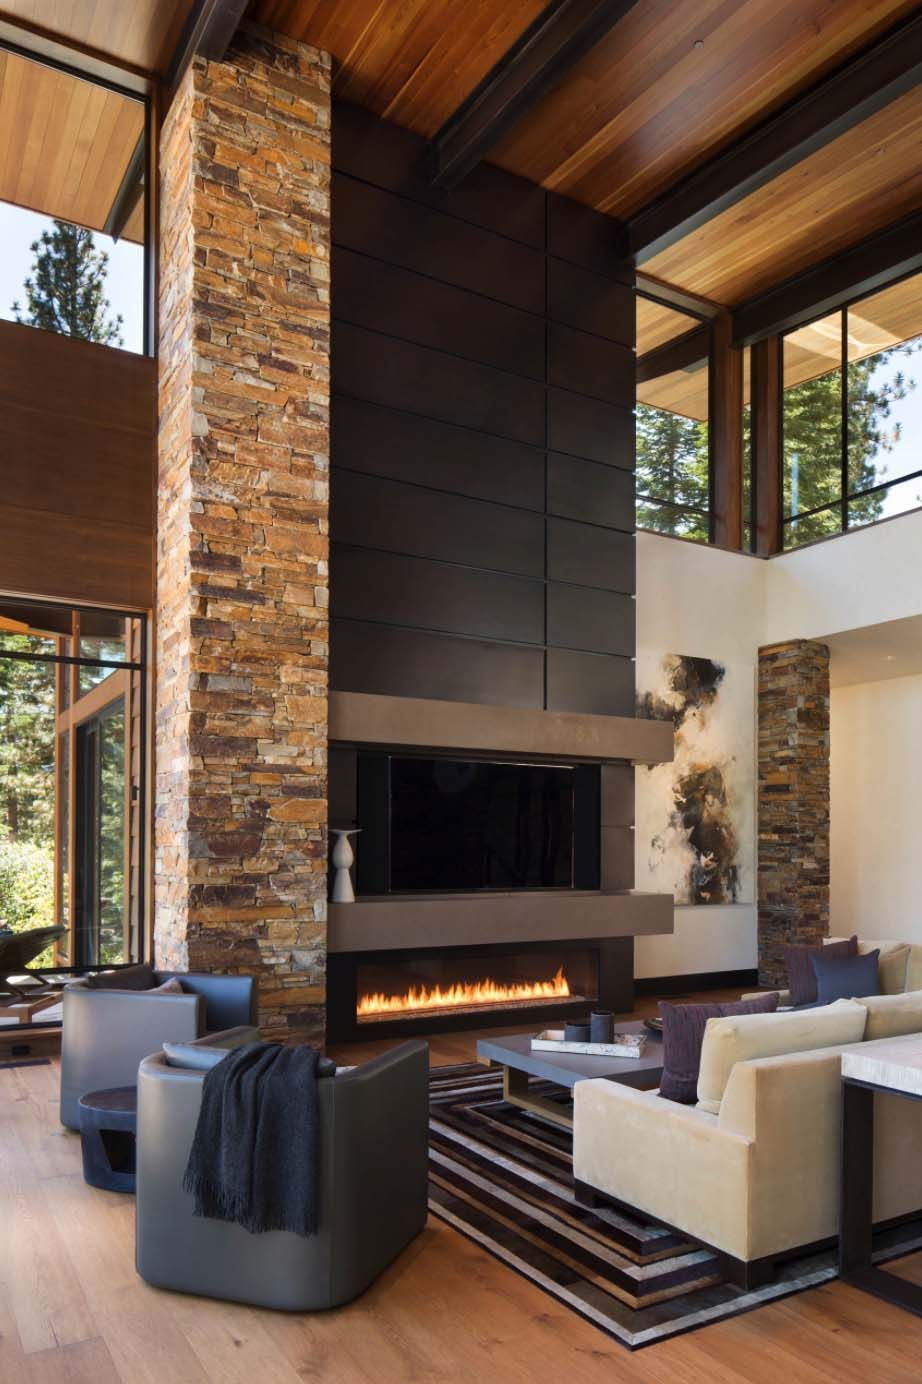 Amazing Interior Design Ideas For Home: Fabulous Mountain Modern Retreat In The High Sierras